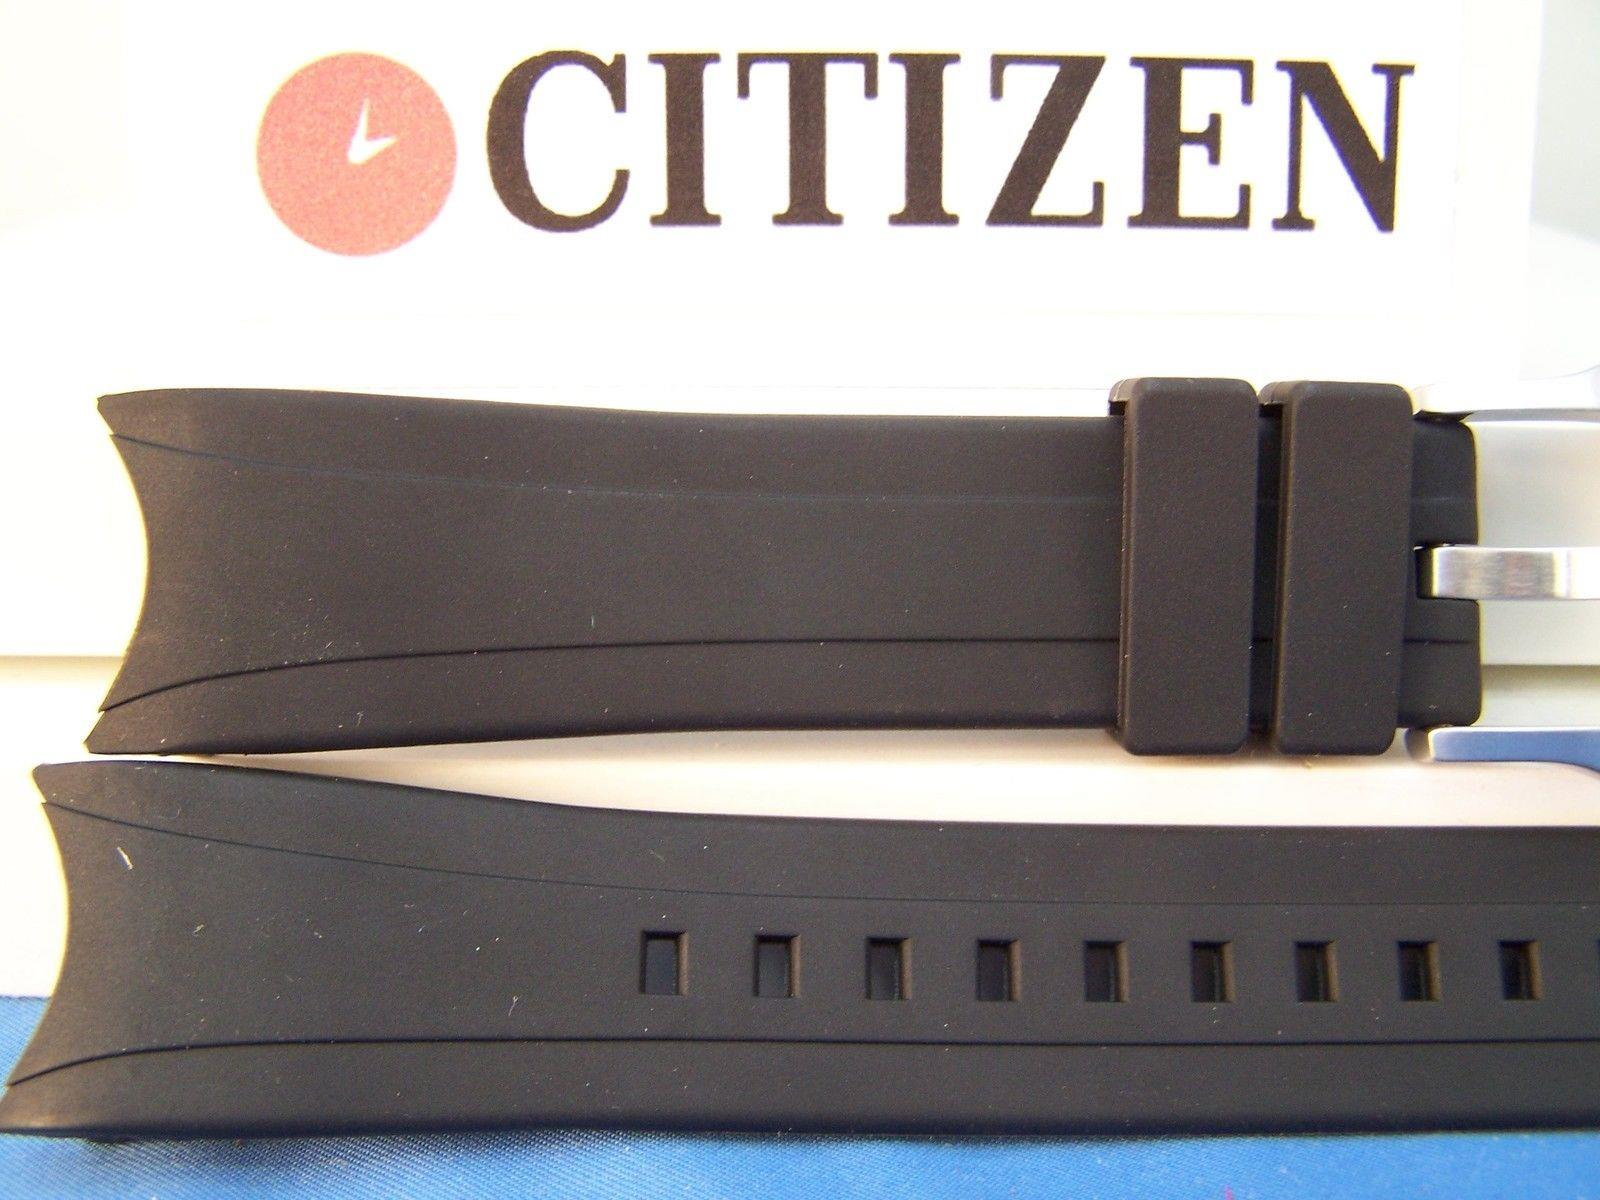 Citizen watchband BJ2115 -07E, back# B740-5064023 Blk Resin Eco-Drive Aqualand